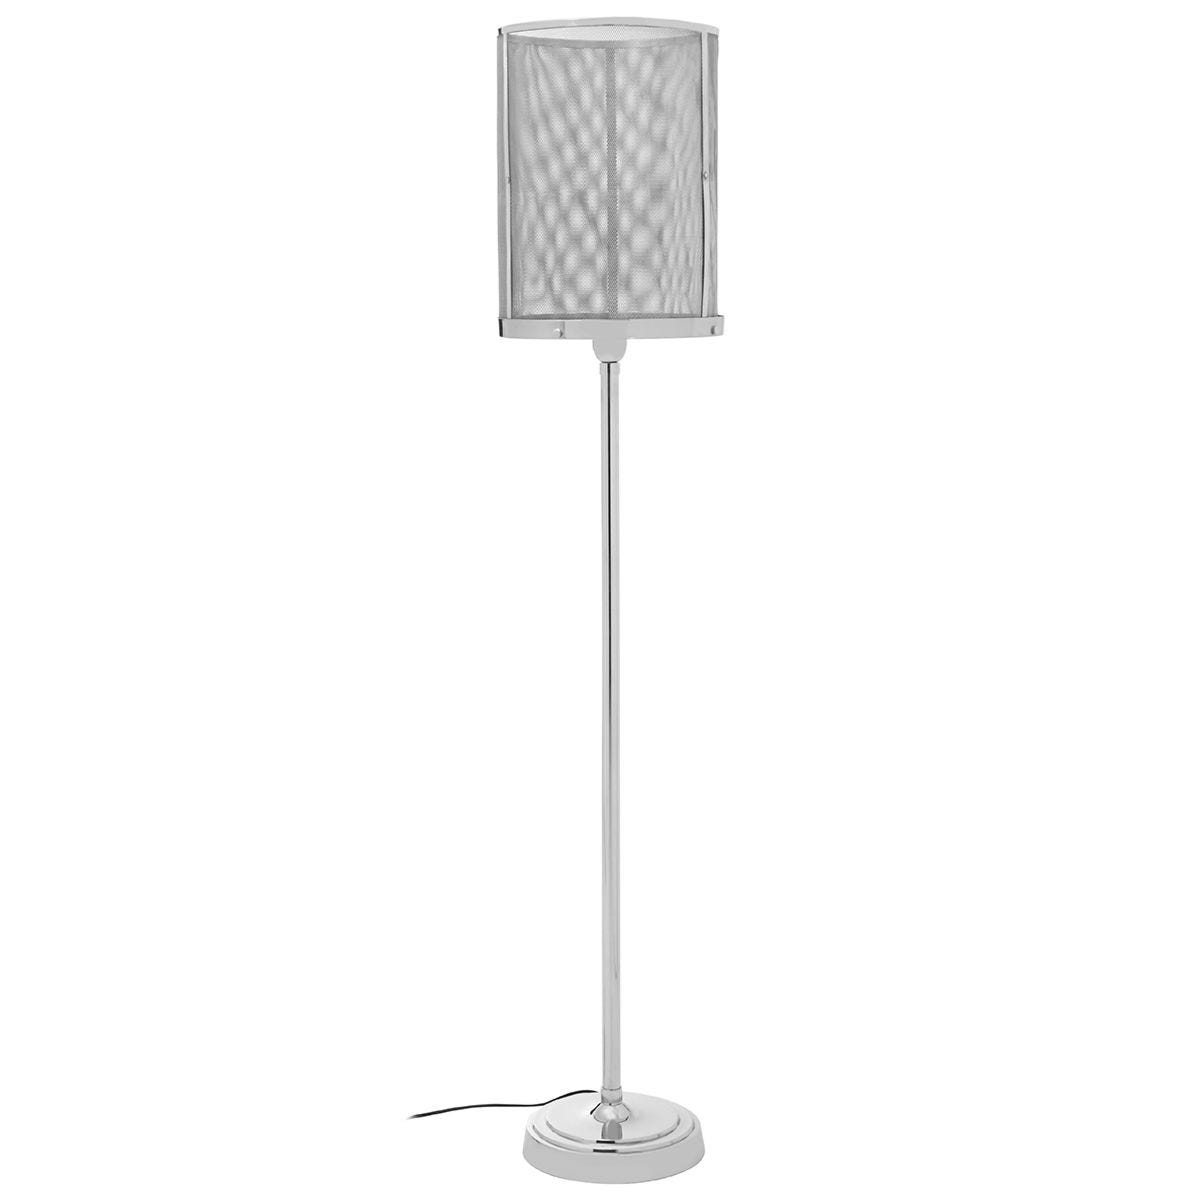 Premier Housewares Myles Floor Lamp with Silver Finish Mesh Shade